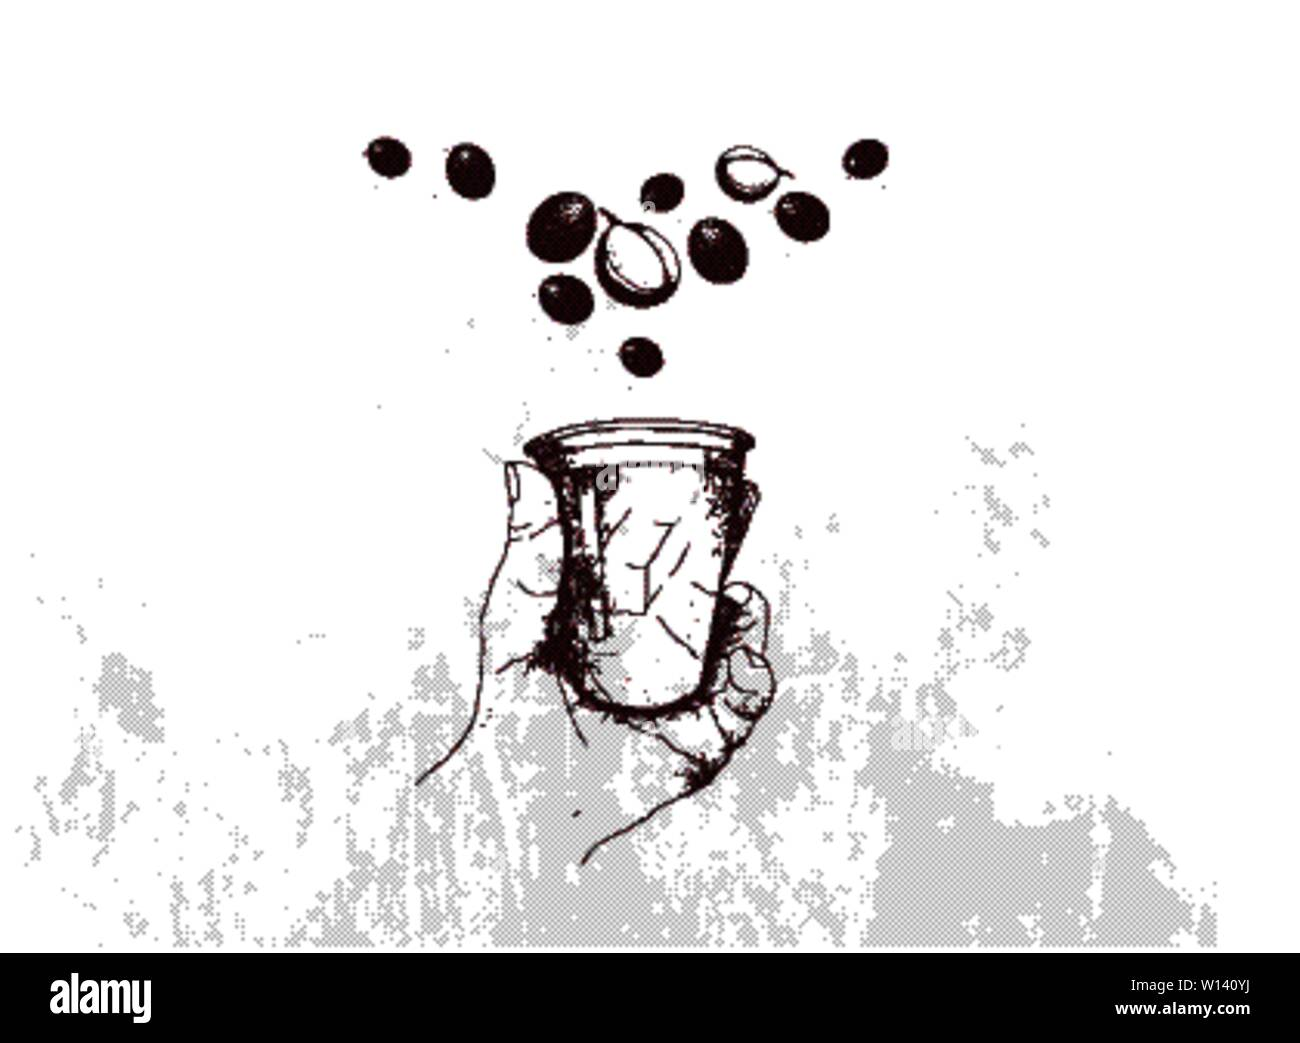 A Time for Coffee, Illustration Hand Drawn Sketch of Hand Holding Takeaway Coffee in A Disposable Cup with Assorted Roasted Coffee Beans. Stock Vector